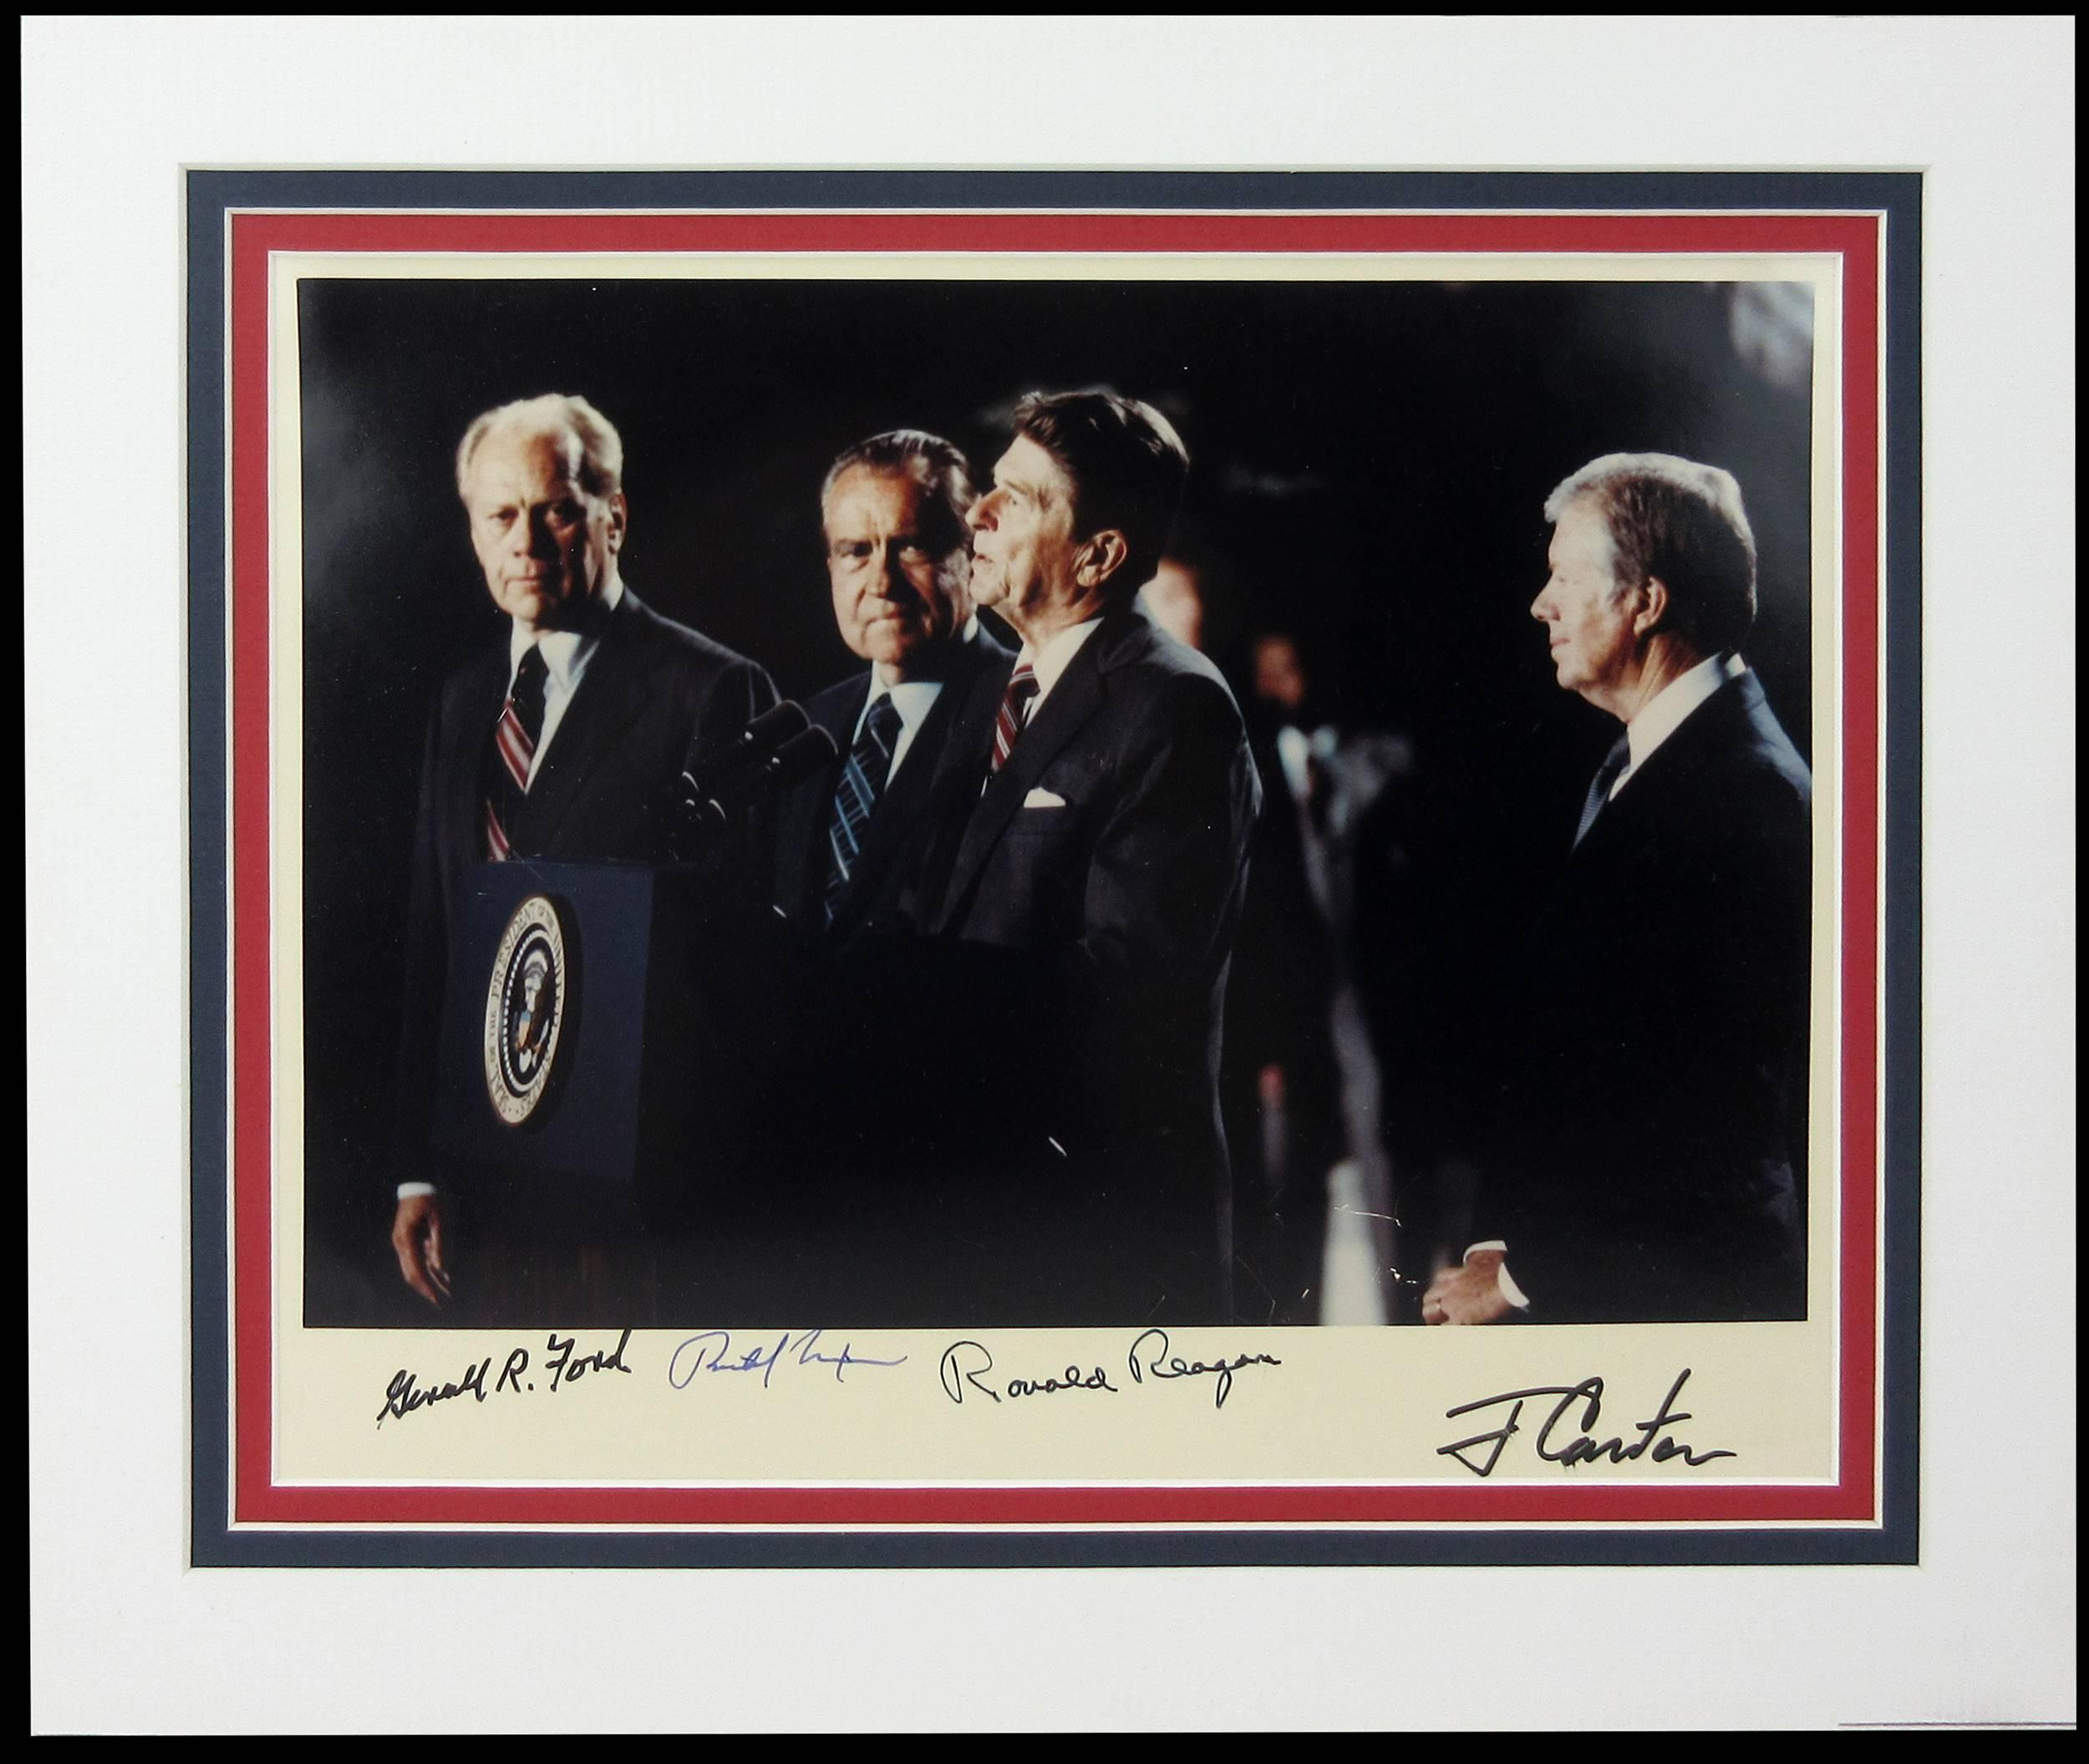 Four Presidents Signed Photo: Reagan, Carter, Ford, Nixon